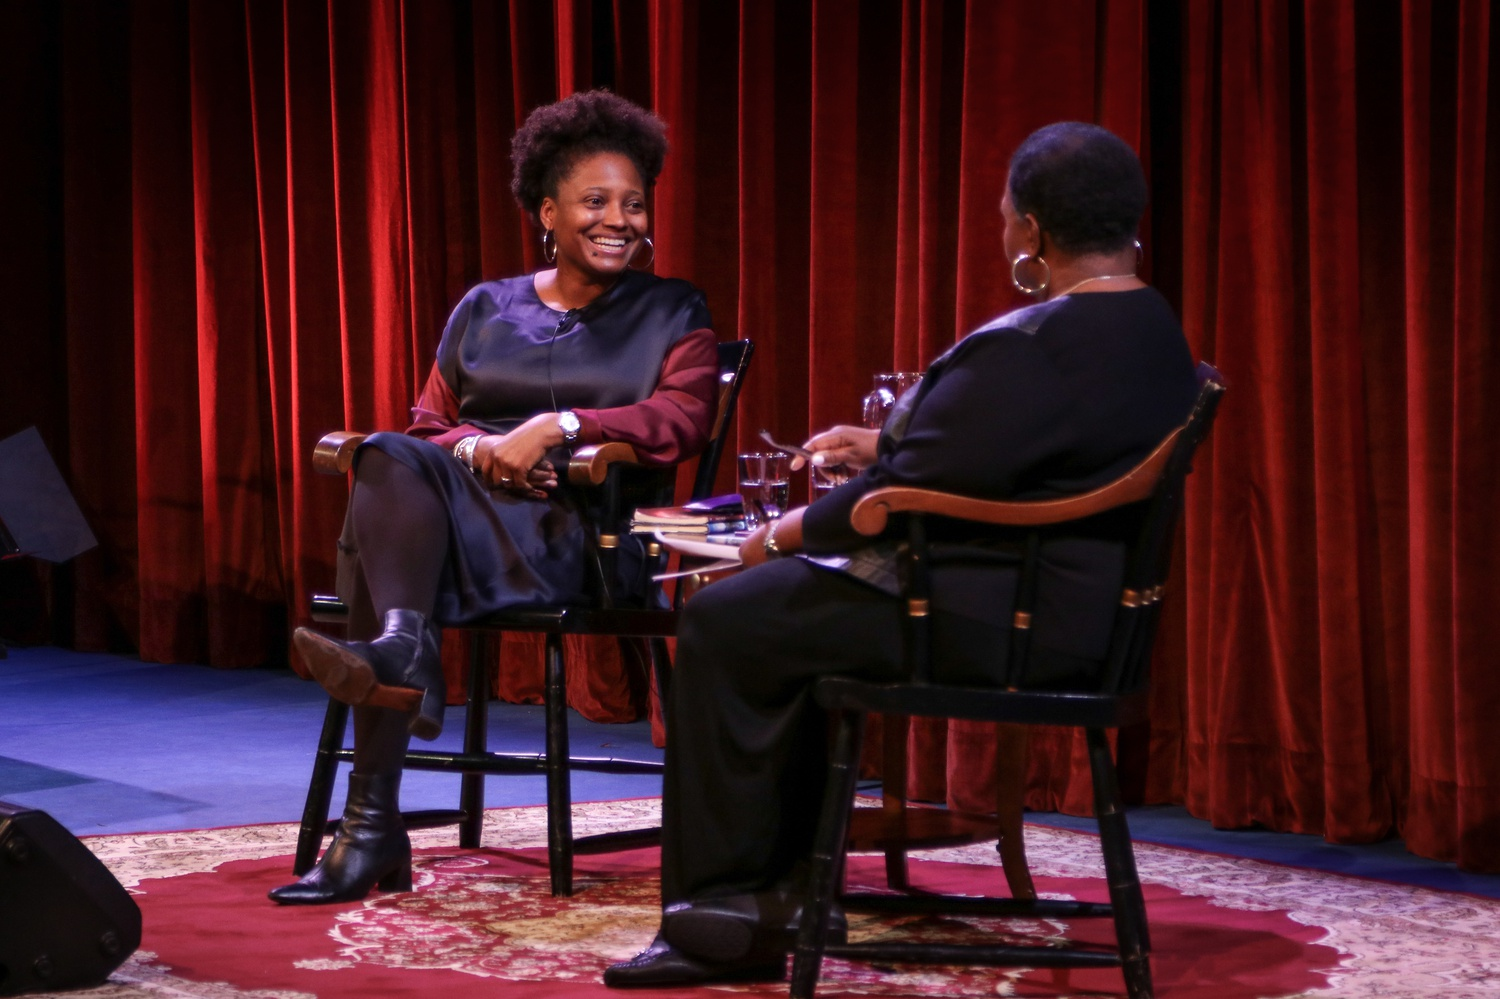 Pulitzer Prize winning poet Tracy K. Smith was awarded the 2019 Harvard Arts Medal on Thursday evening. Smith is currently serving as the 22nd Poet Laureate of the United States.